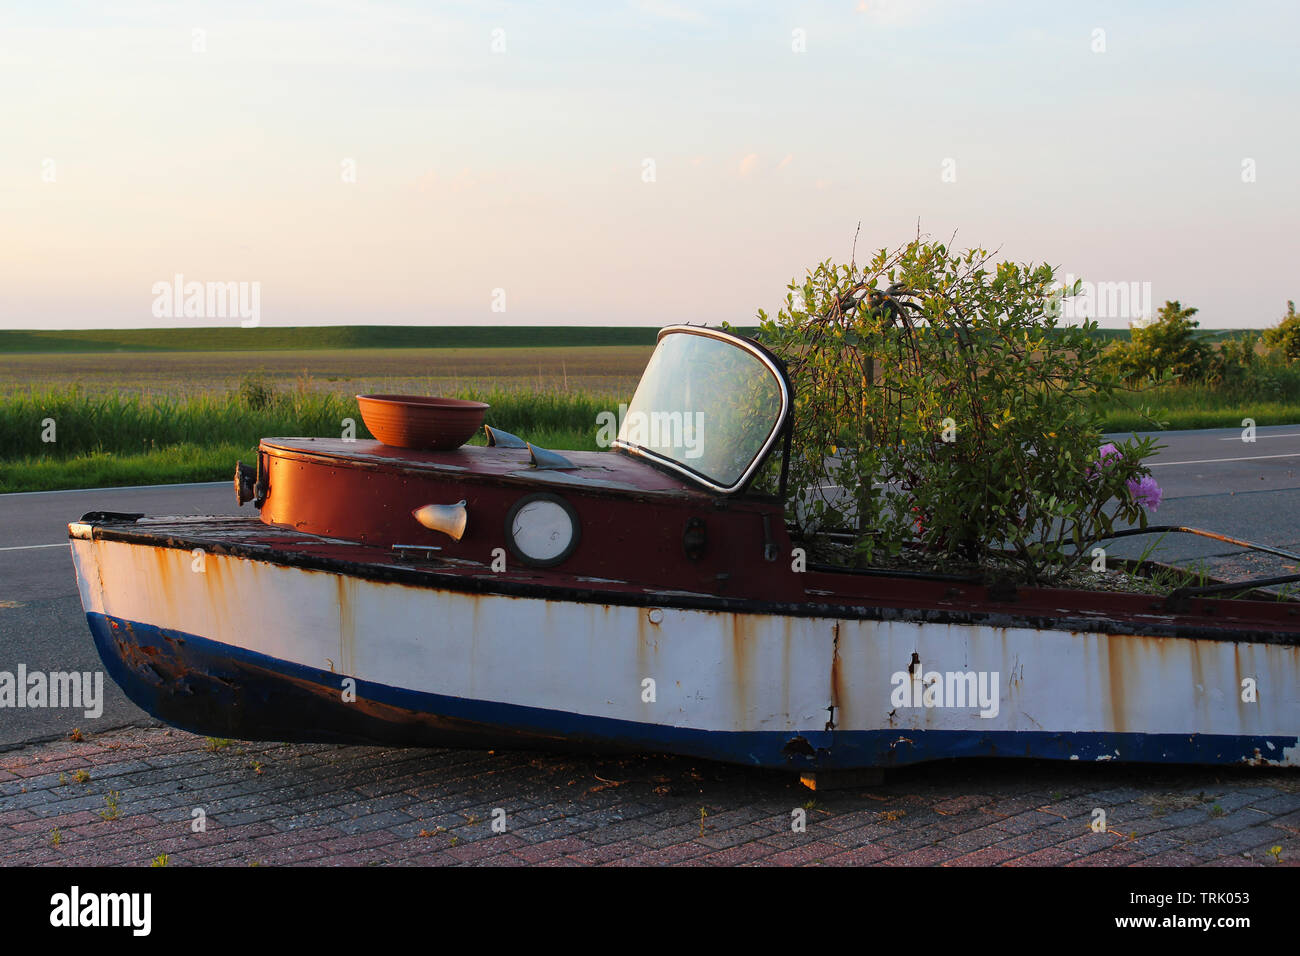 Rusty old sport boat repurposed to a plant tub and decorated with flowers, green field or grassland under beautiful sunset sky - Stock Image